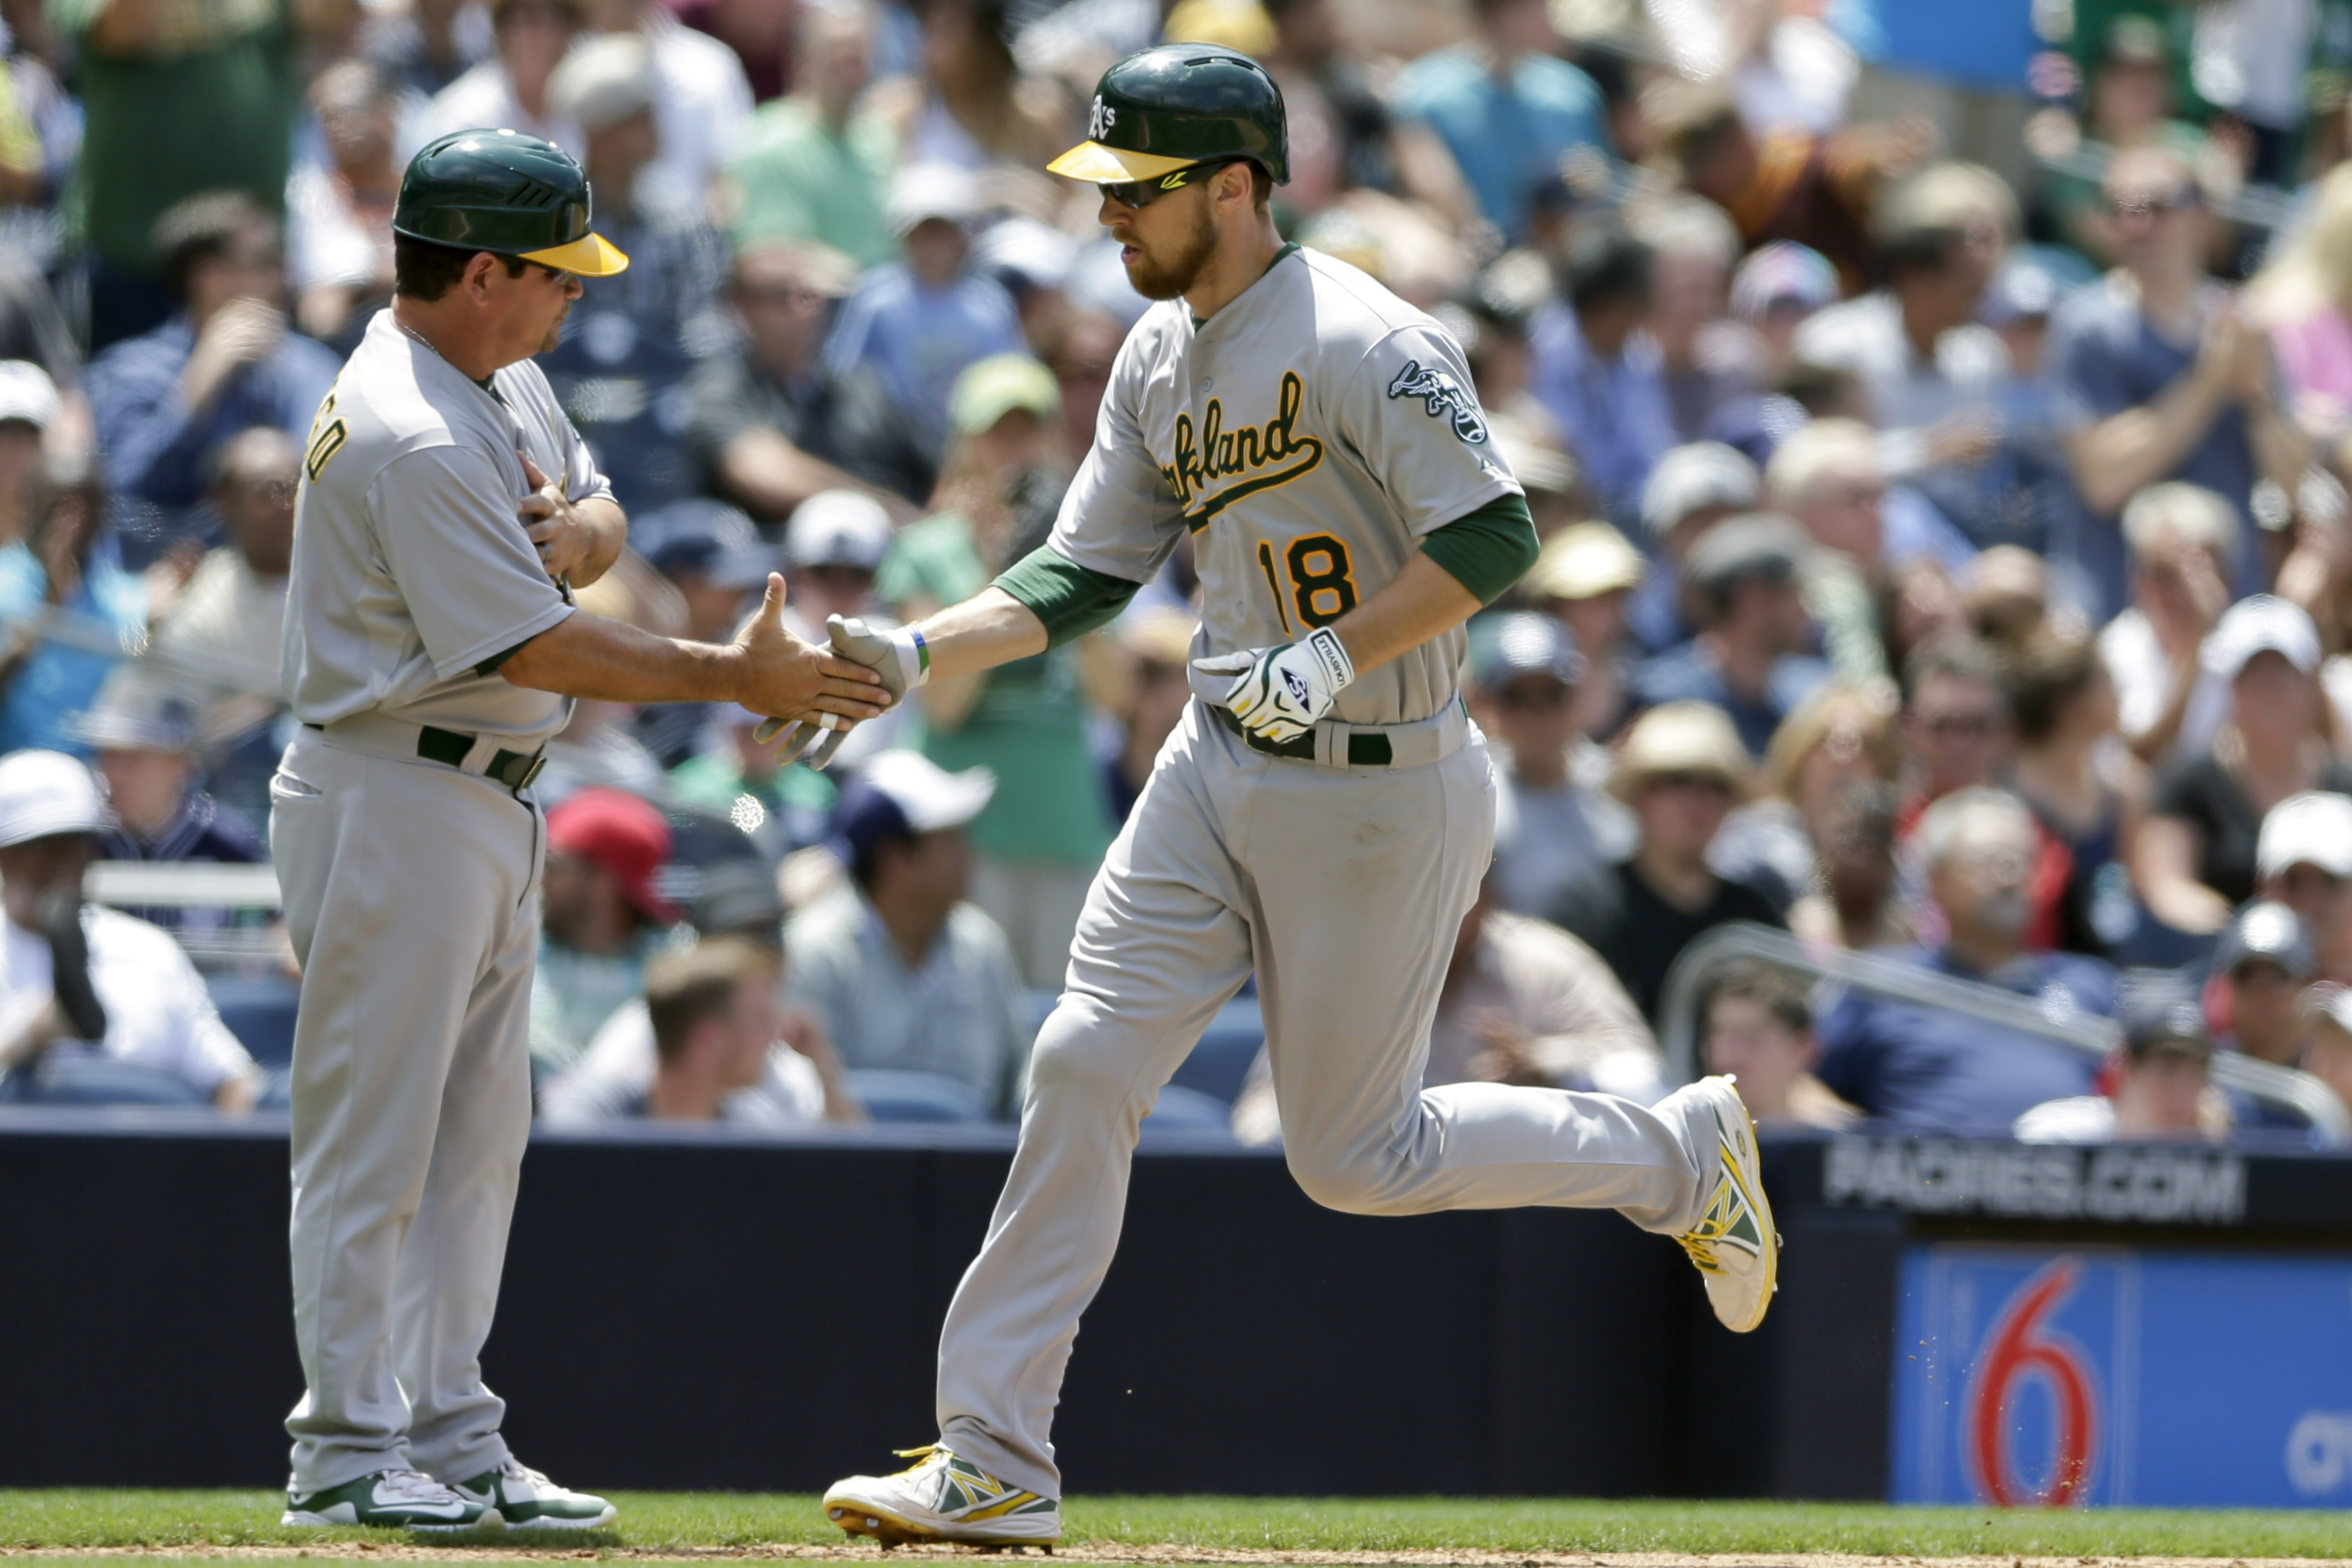 Oakland Athletics' Ben Zobrist (18) is greeted by third base coach Mike Gallego after hitting a two-run home run against the San Diego Padres during the sixth inning of a baseball game Tuesday, June 16, 2015, in San Diego. (AP Photo/Gregory Bull)